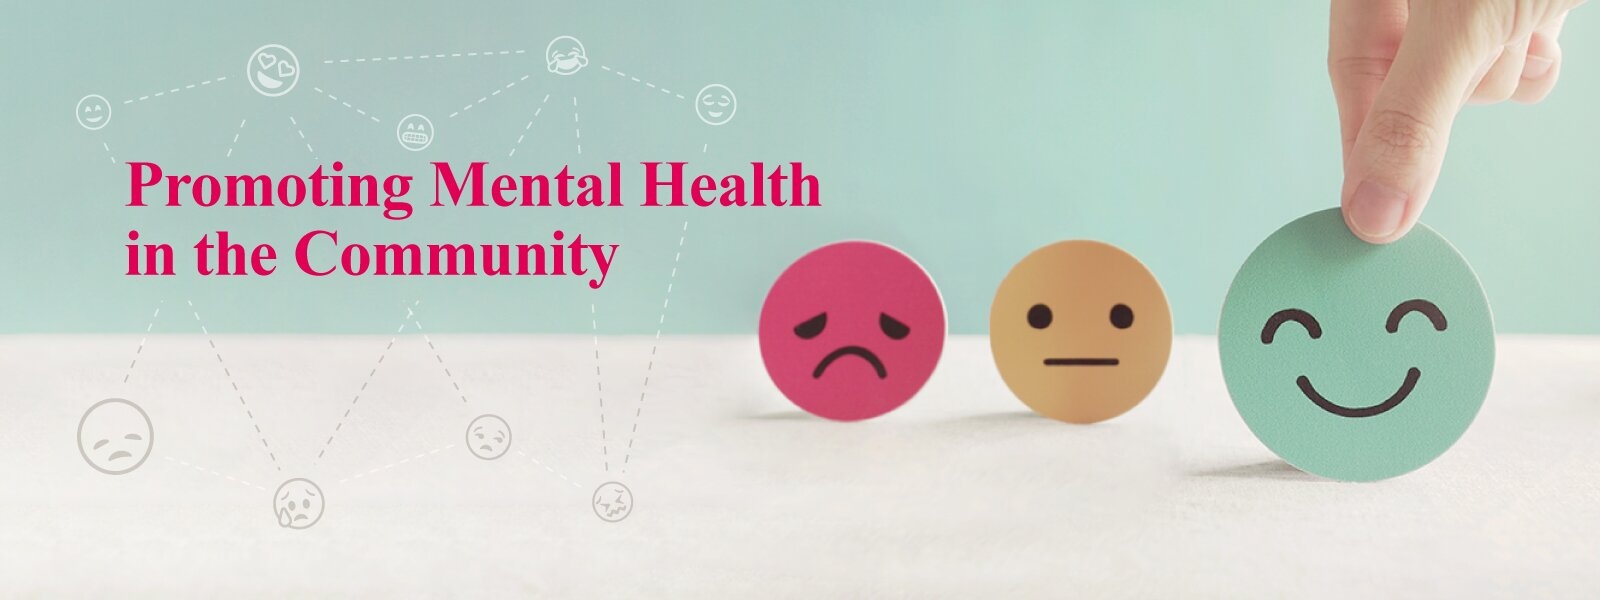 Promoting Mental Health in the Community